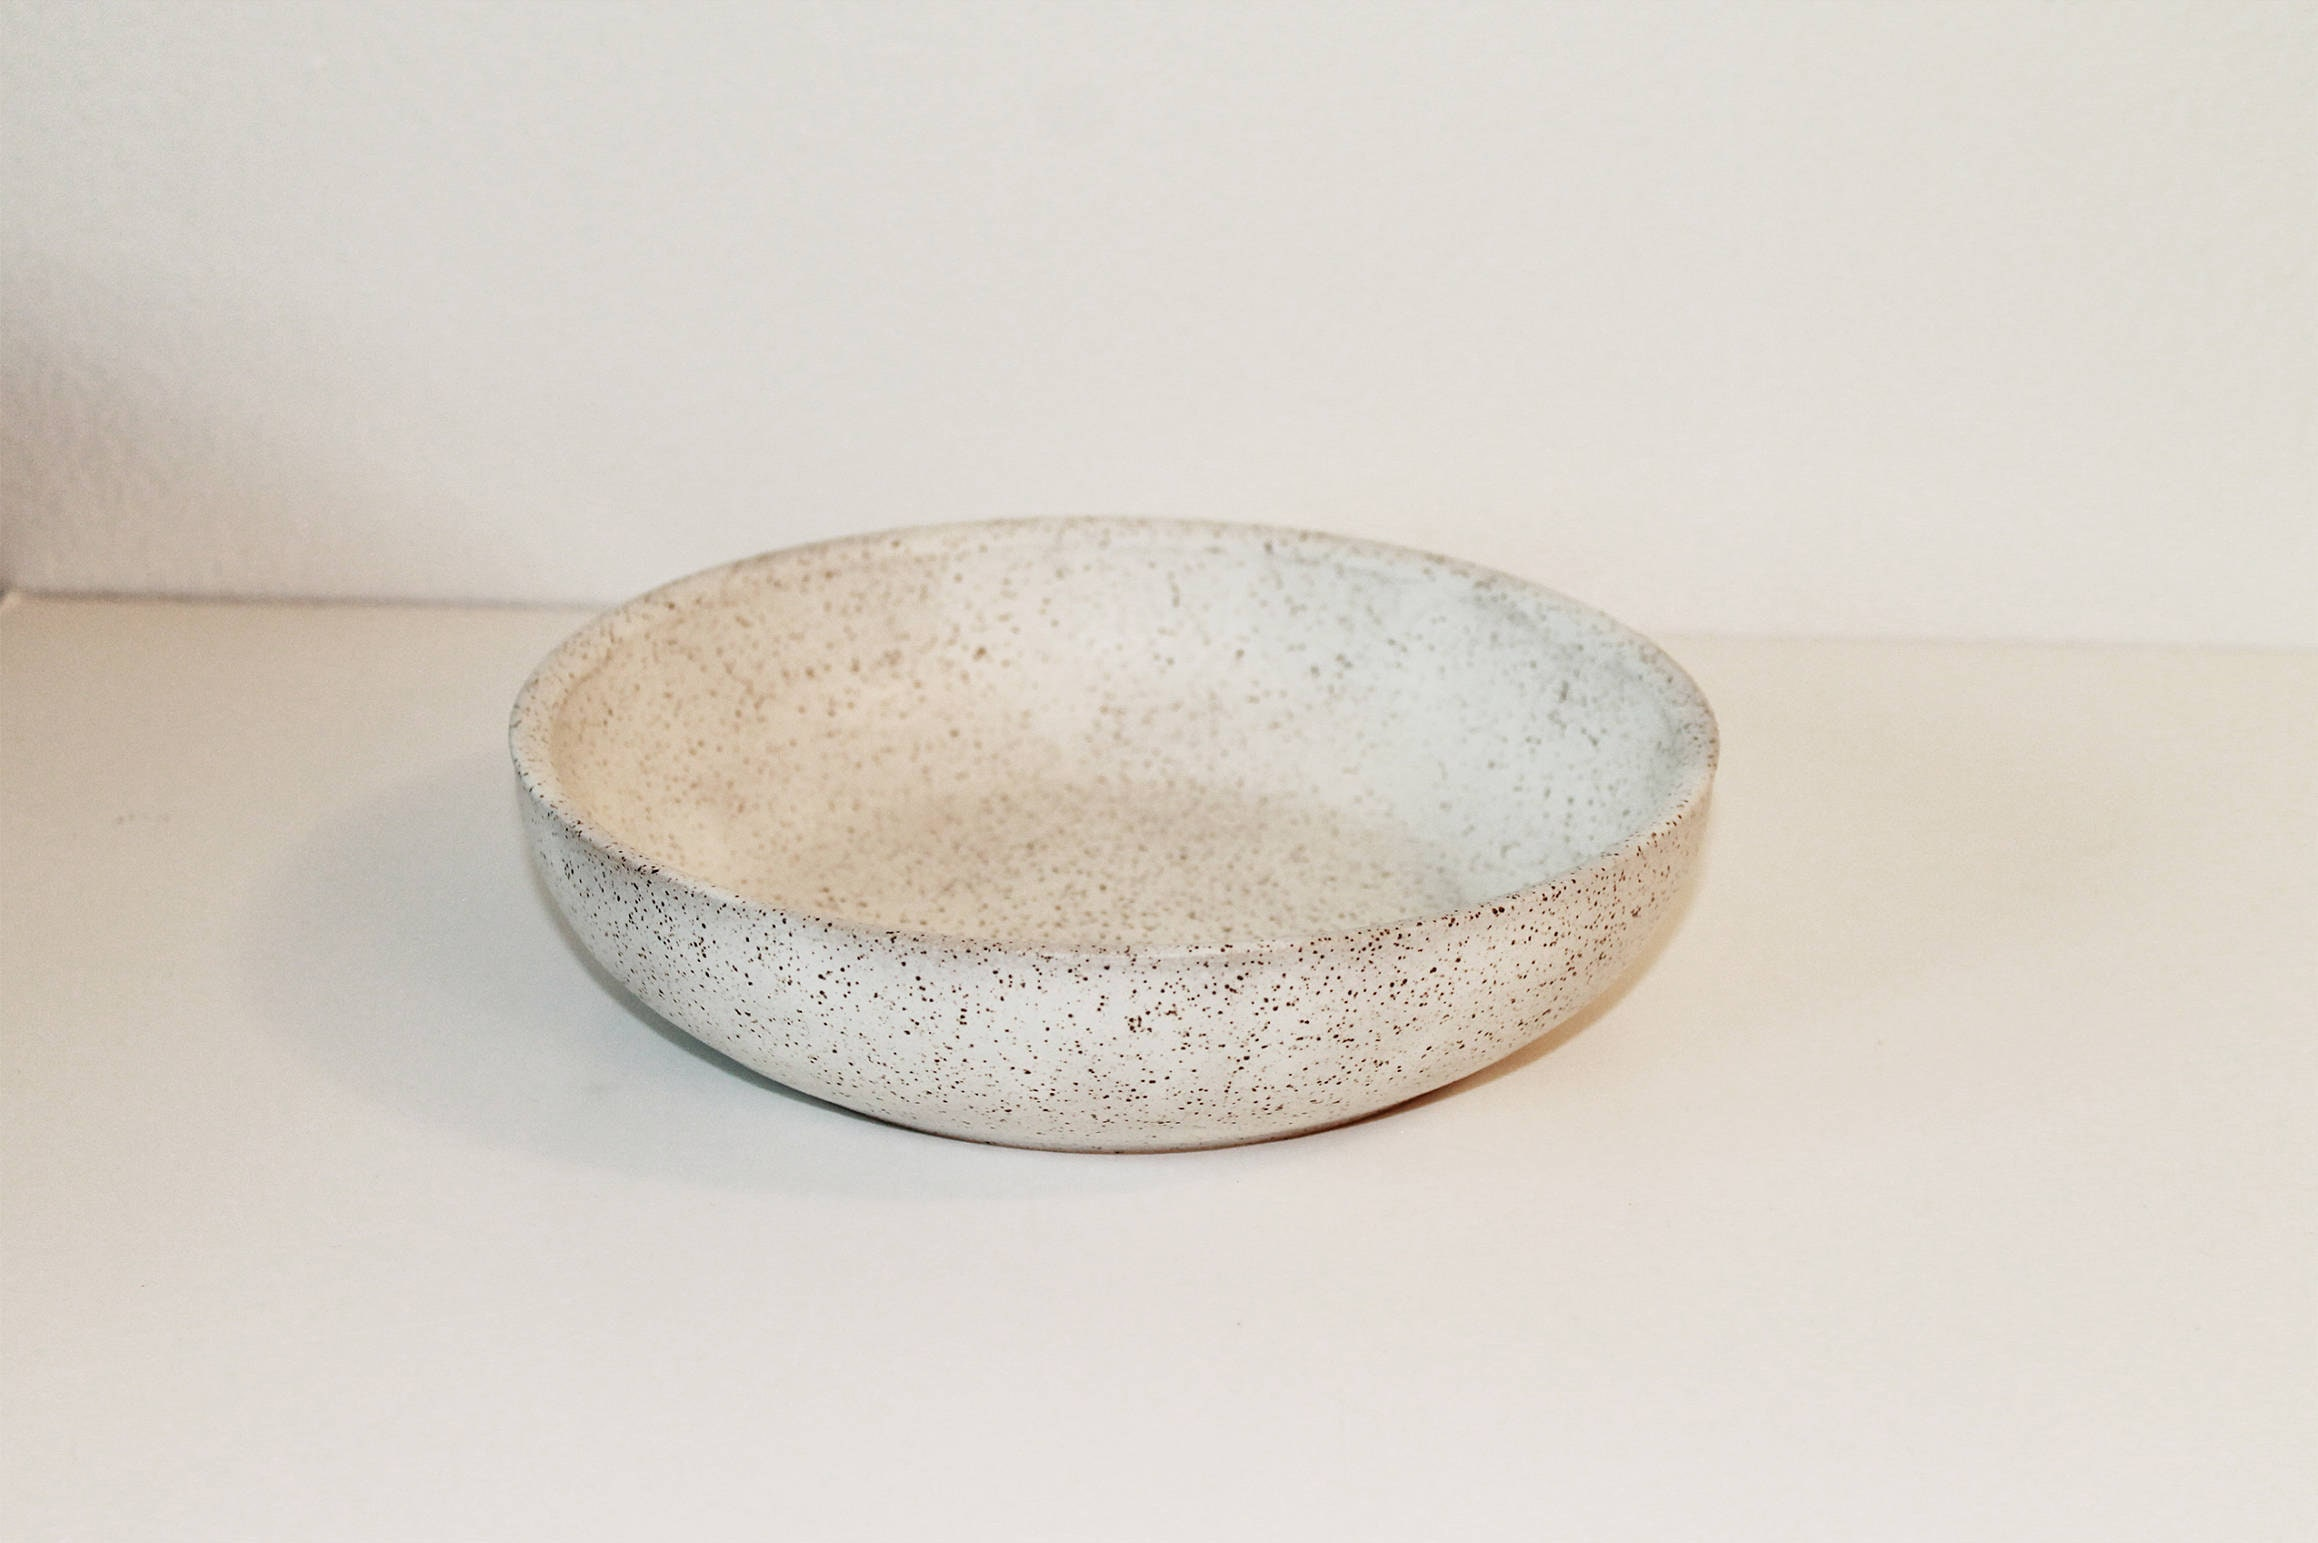 Speckled White Bowl Rustic Bowl Handmade Bowl Pottery